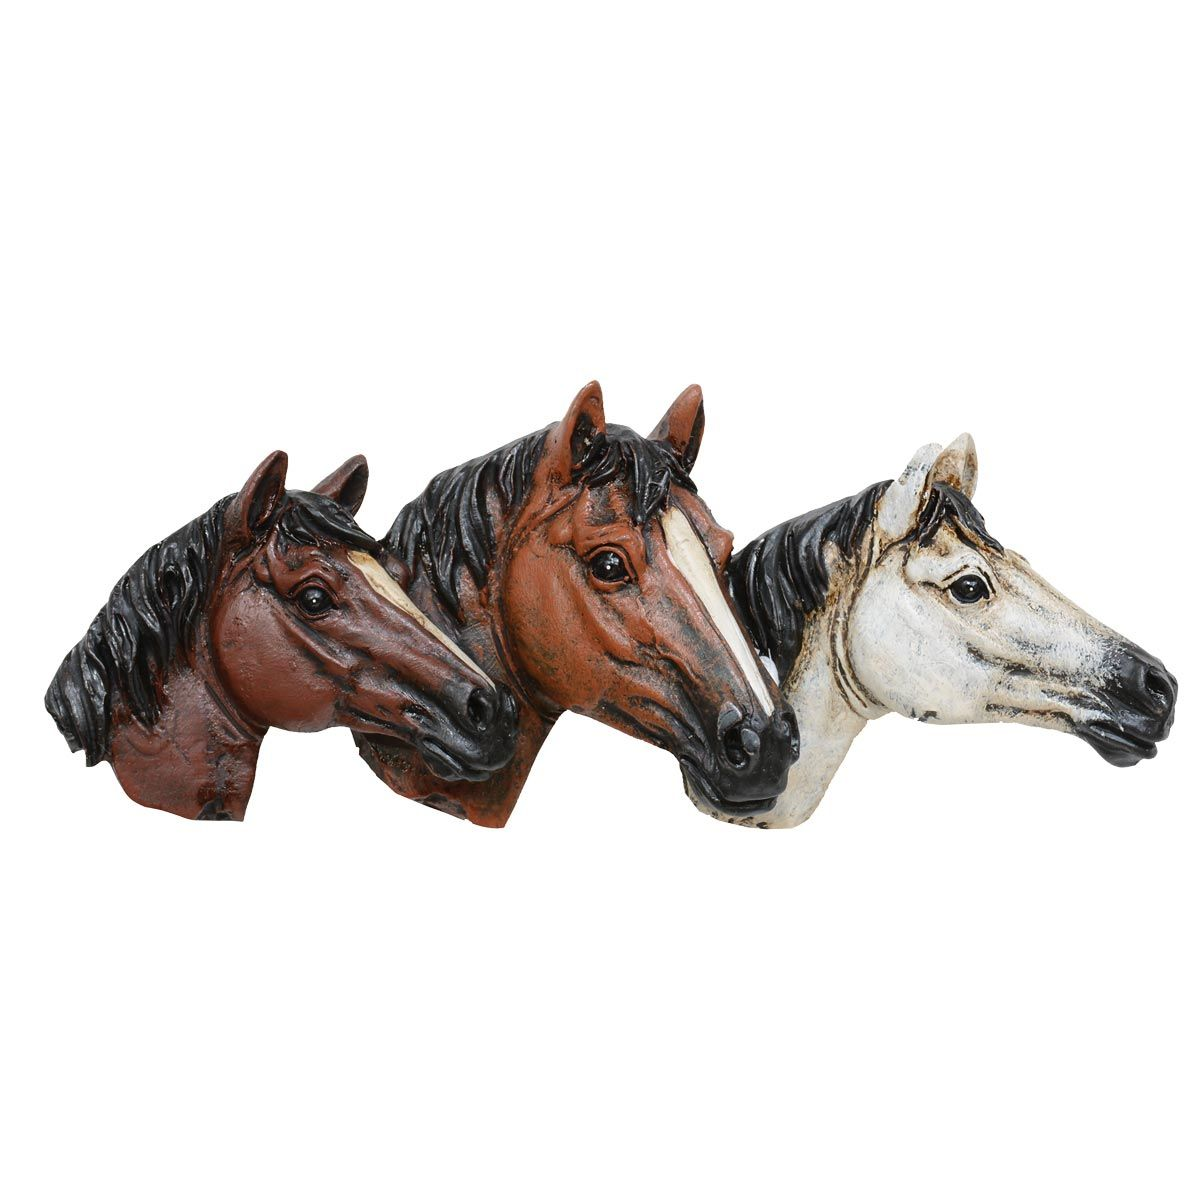 Horsehead Drawer Pulls - Set of 6